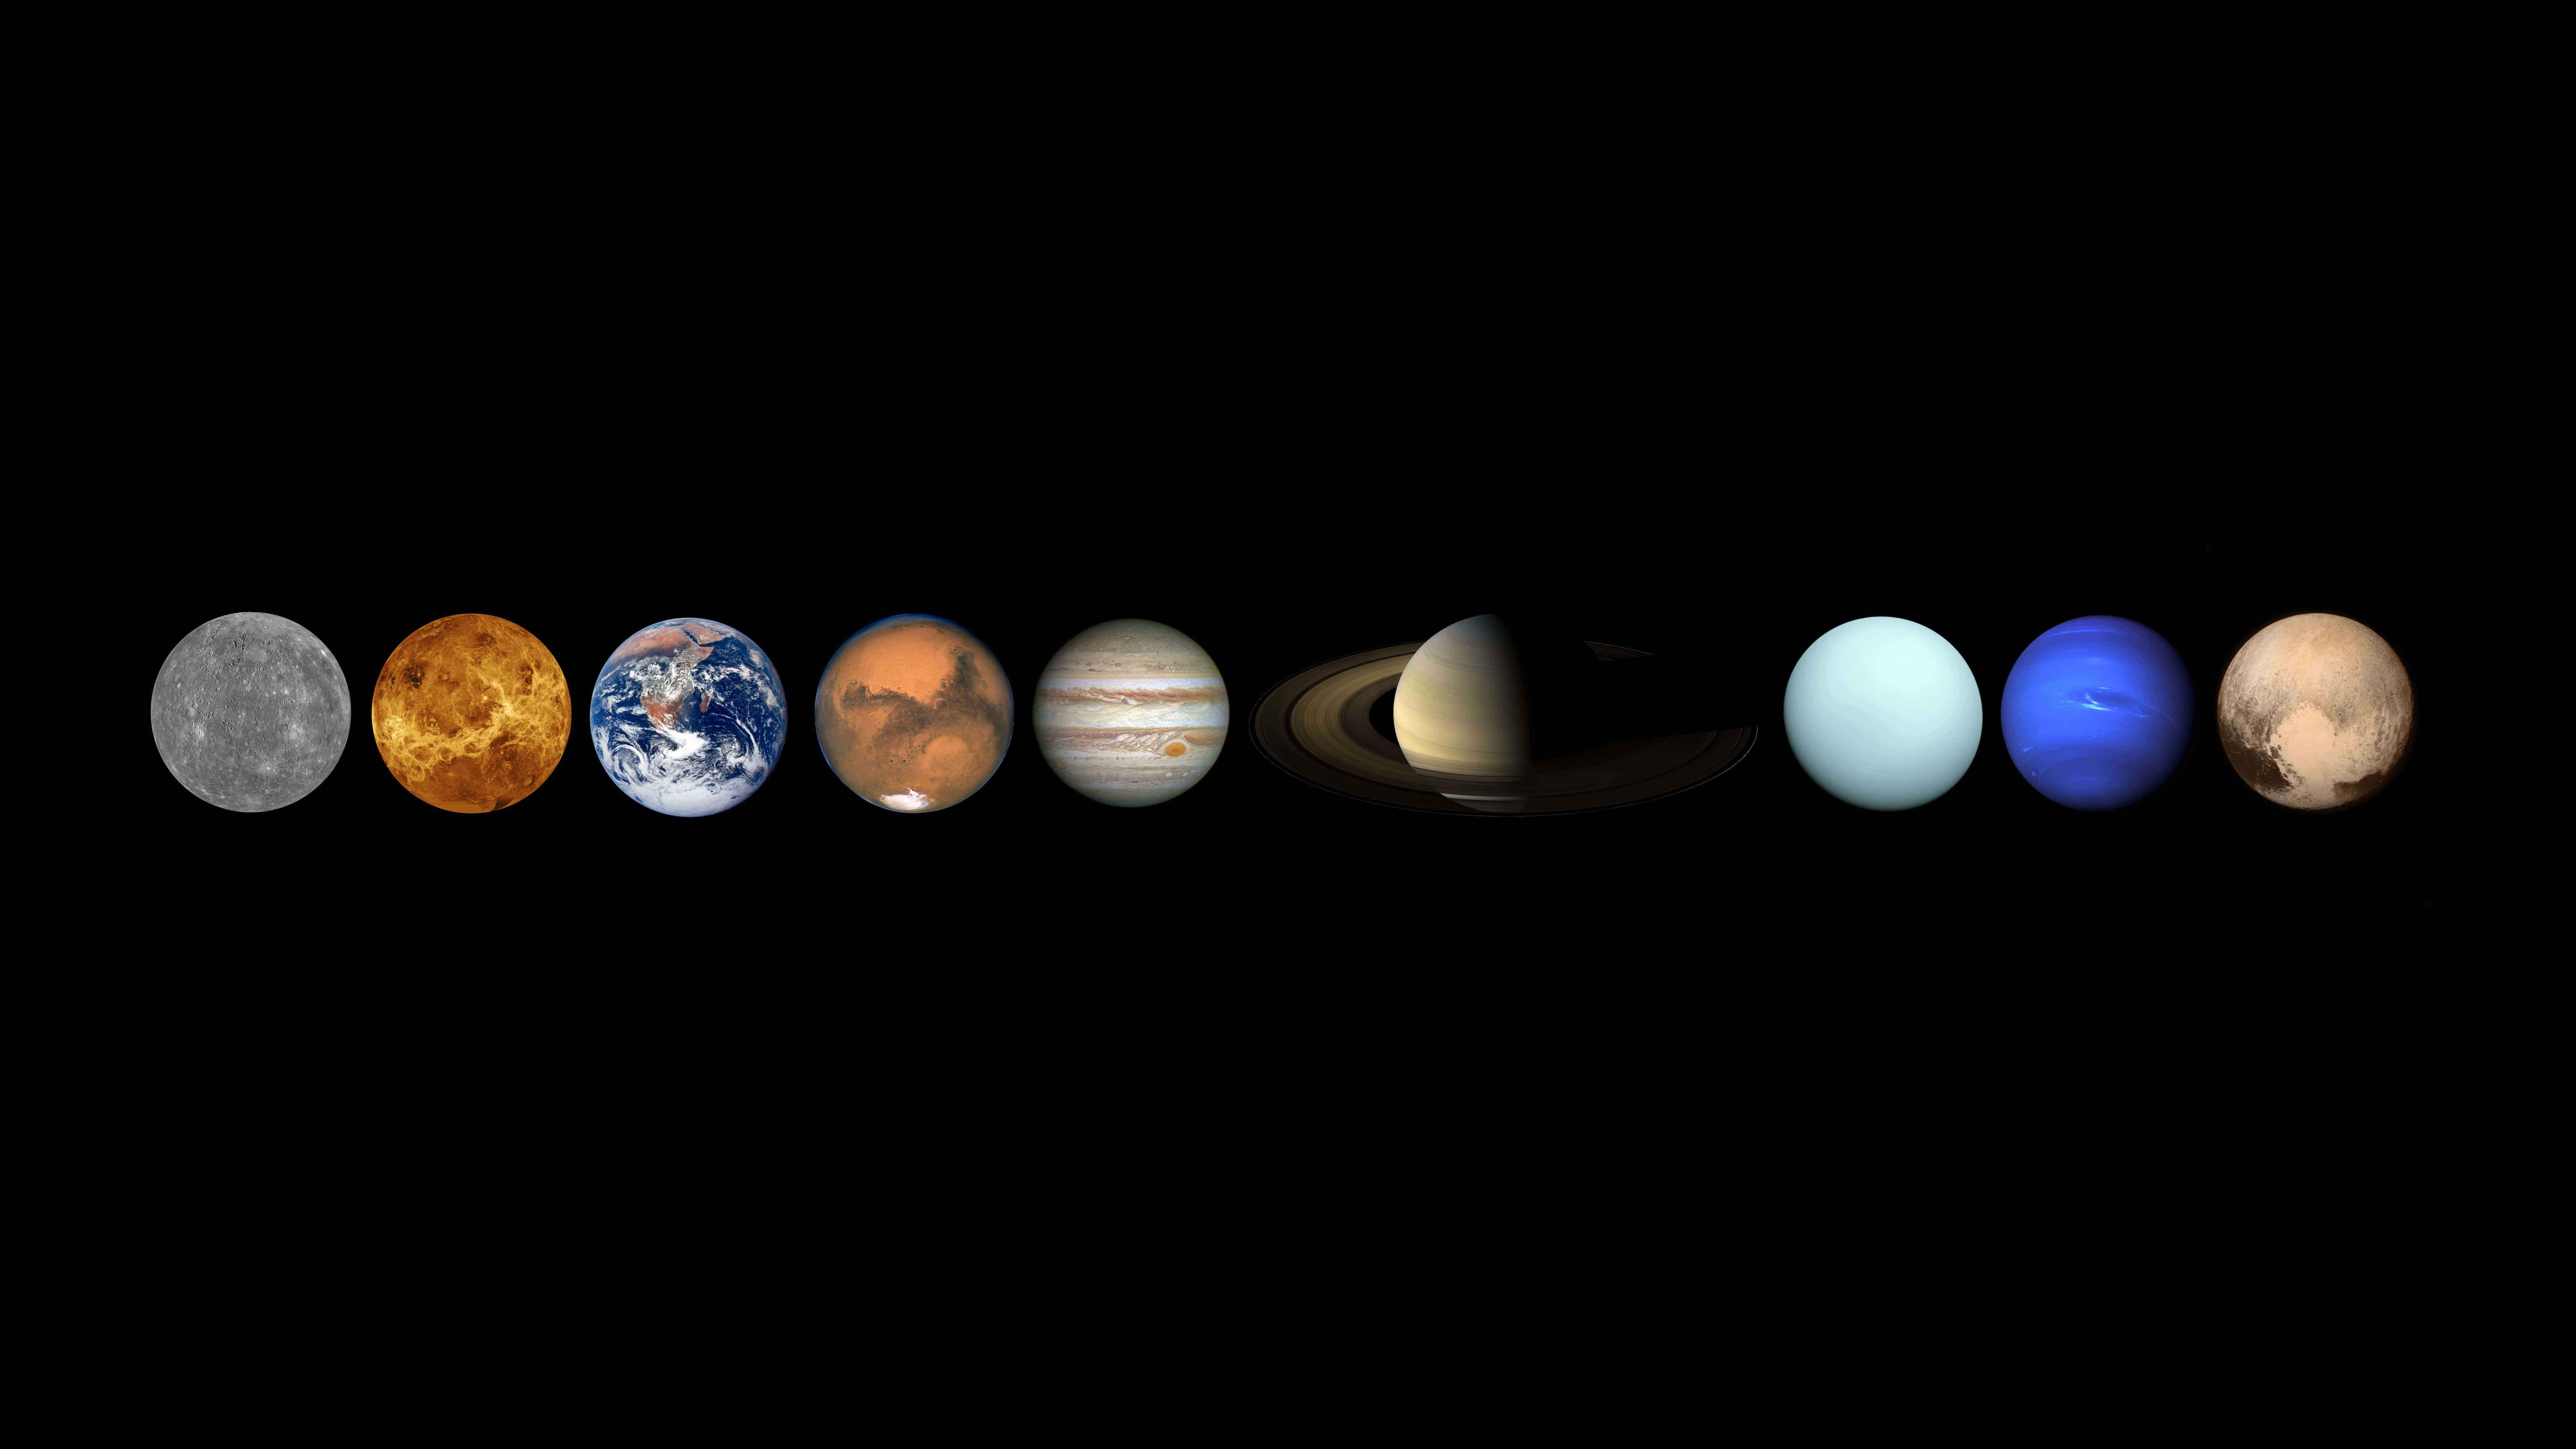 7680x4320 - Solar System Wallpapers 24